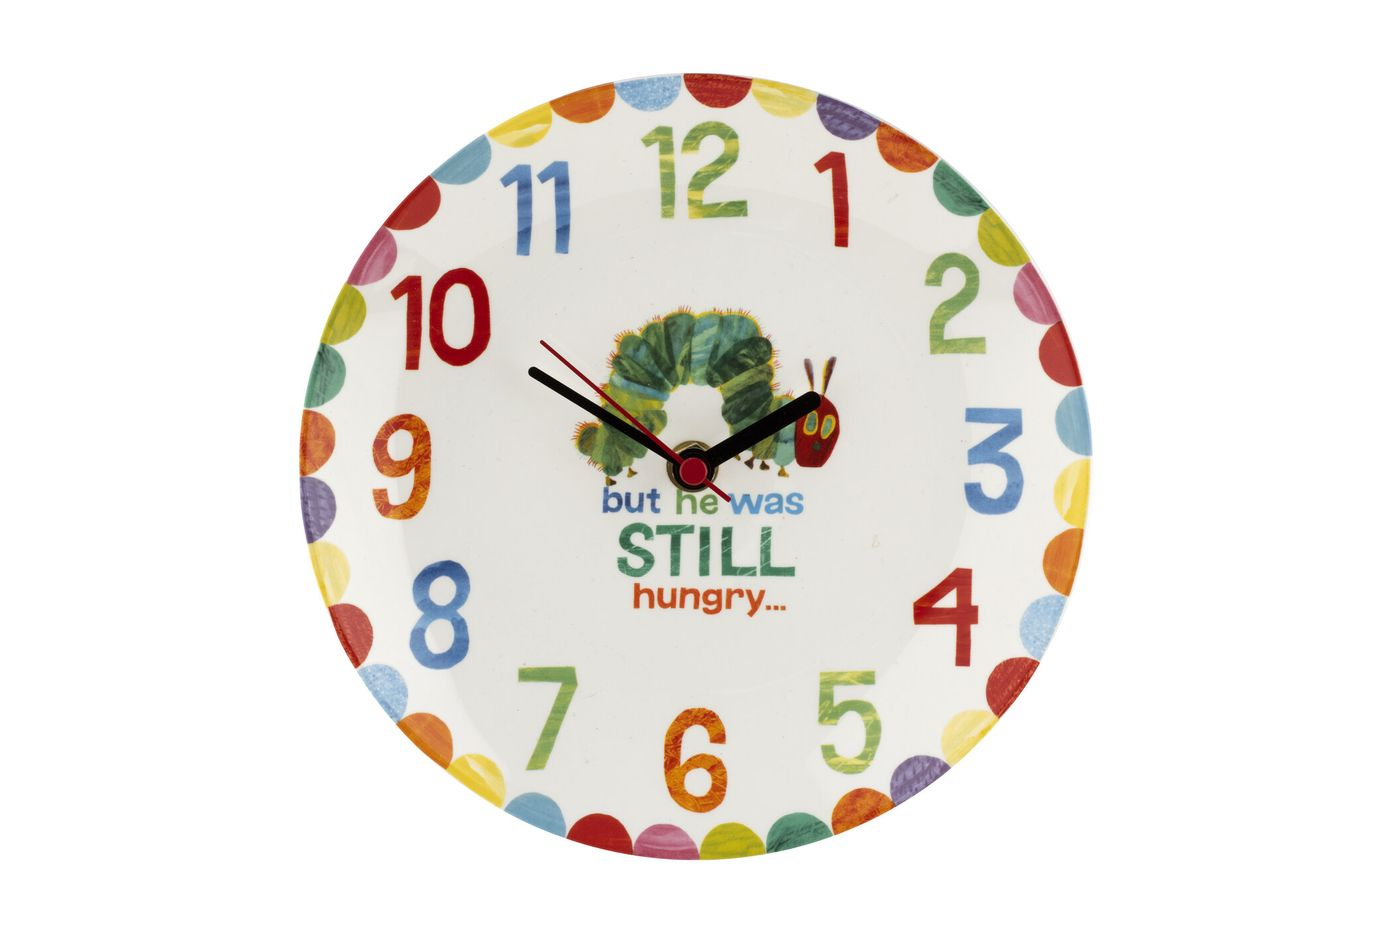 Portmeirion The Very Hungry Caterpillar by Eric Carle Clock thumb 1